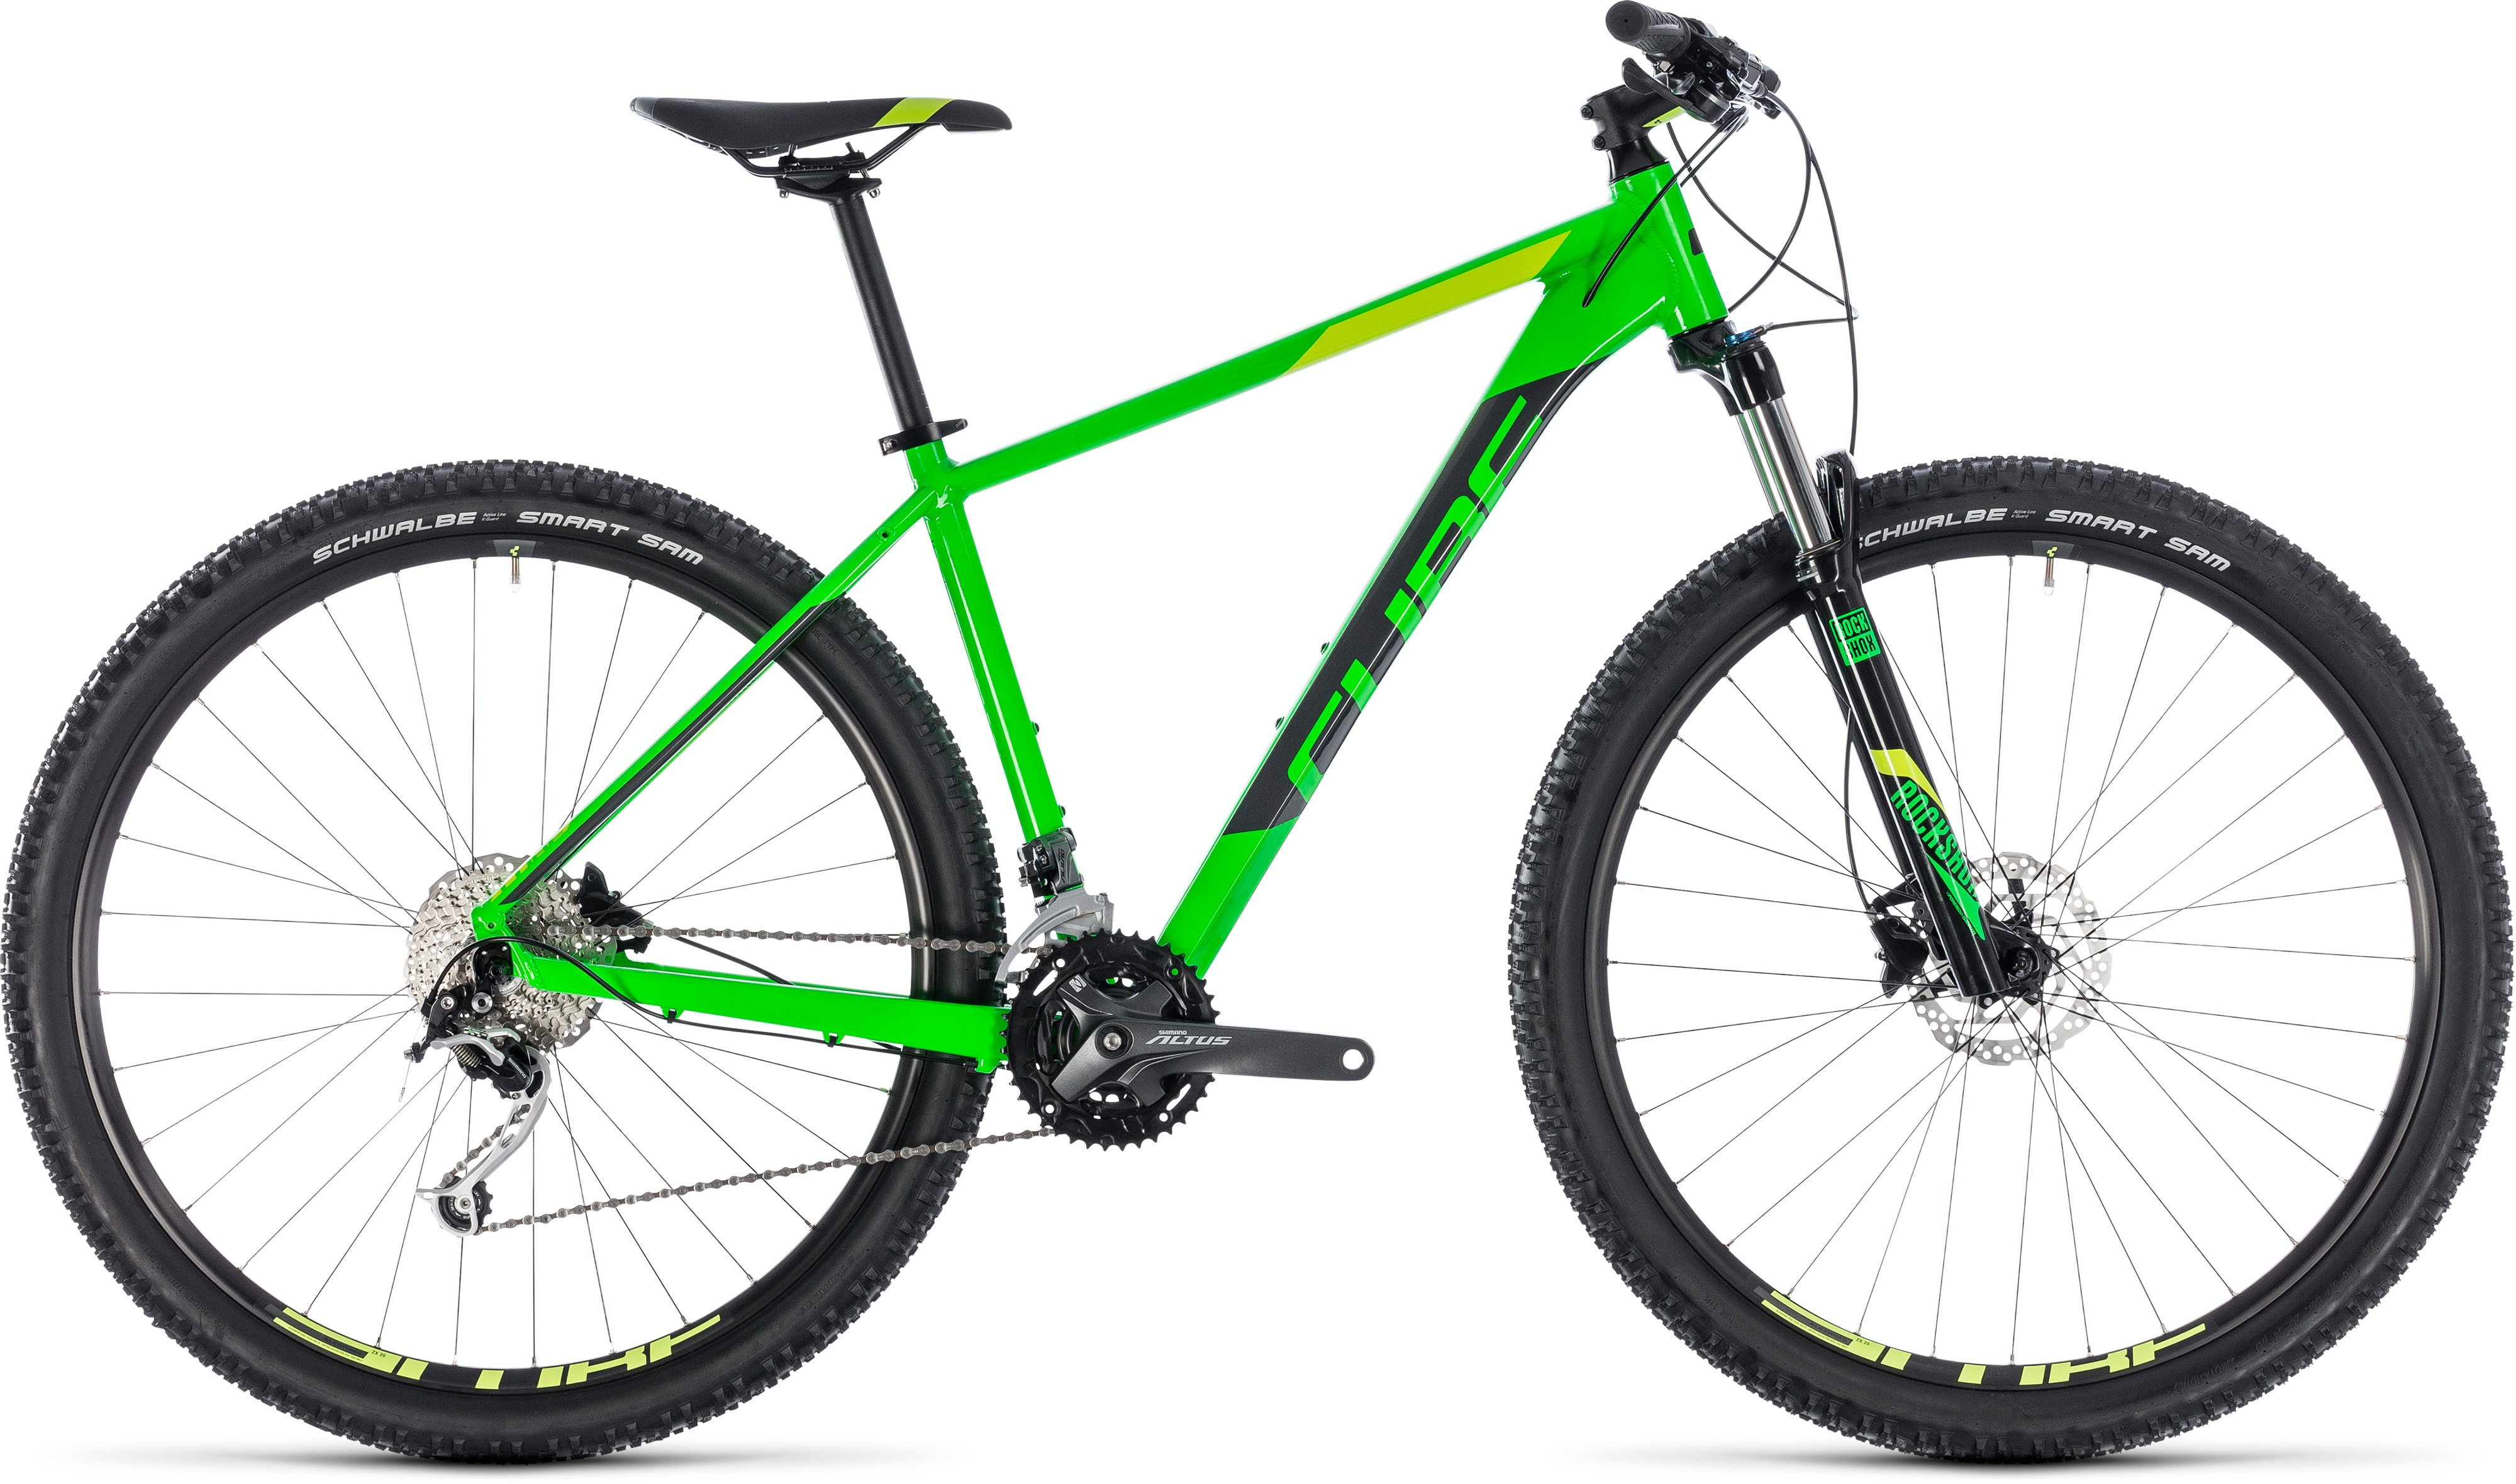 8fc022f9cb2 Cube Analog Hardtail Mountain Bike 2018 Green/Grey £499.99